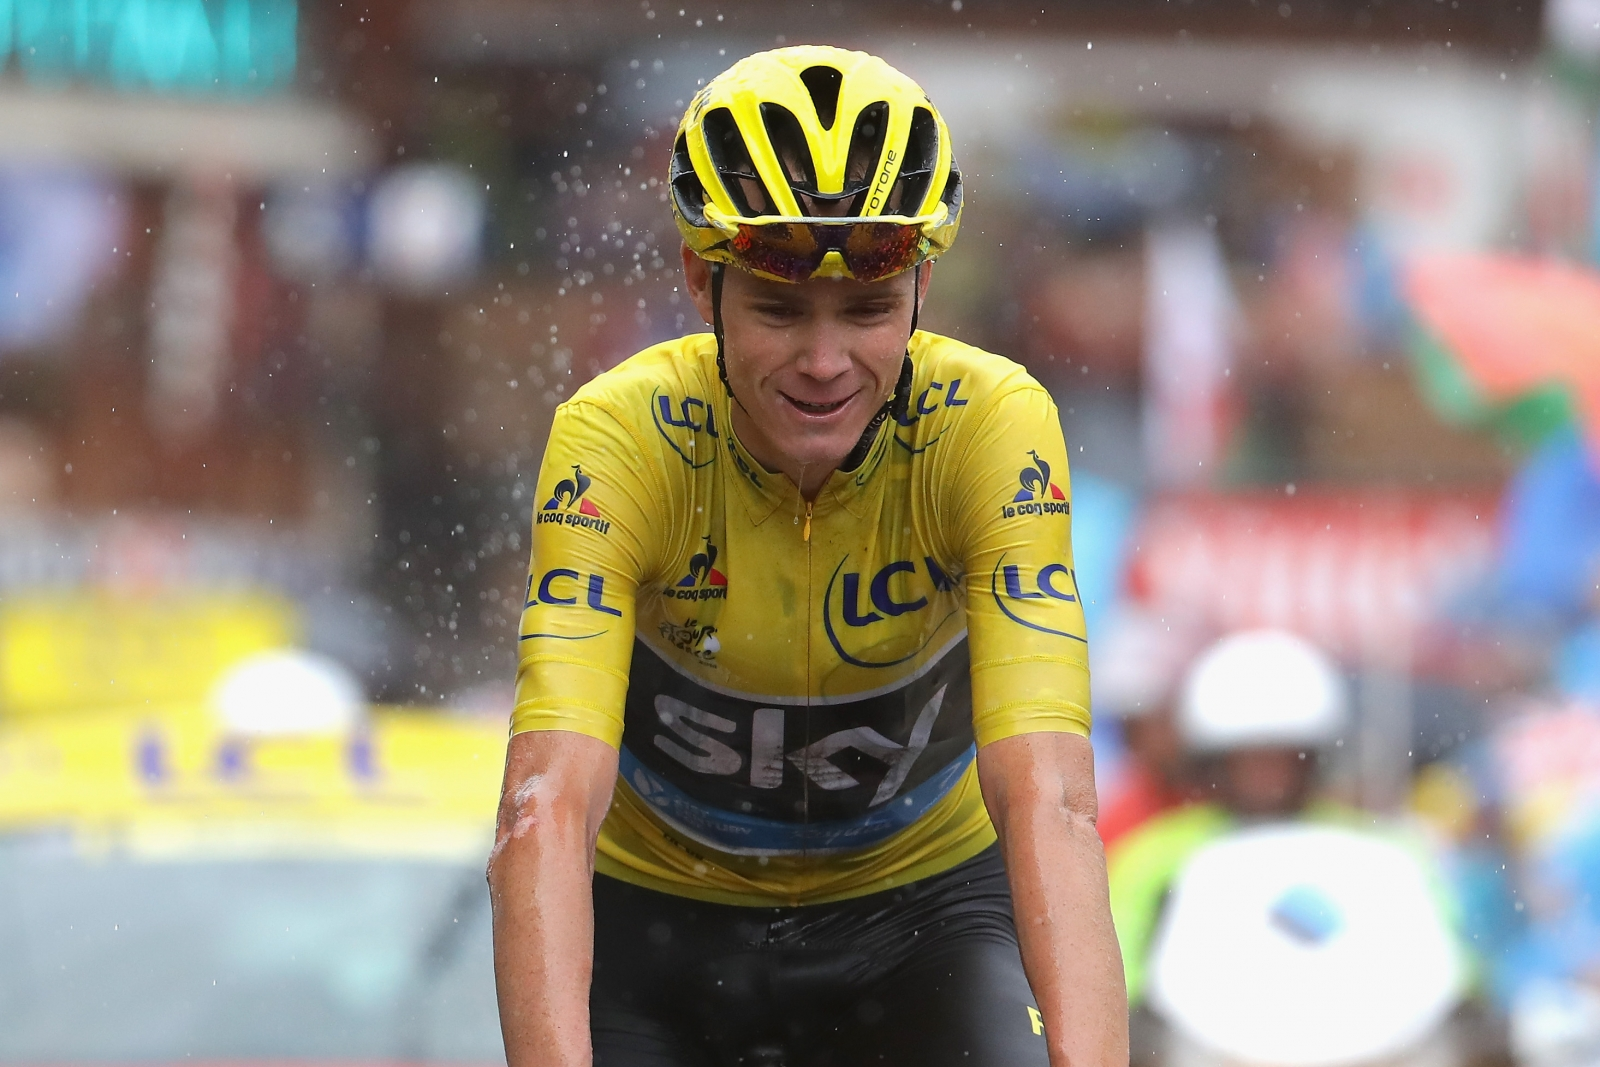 chris froome - photo #29